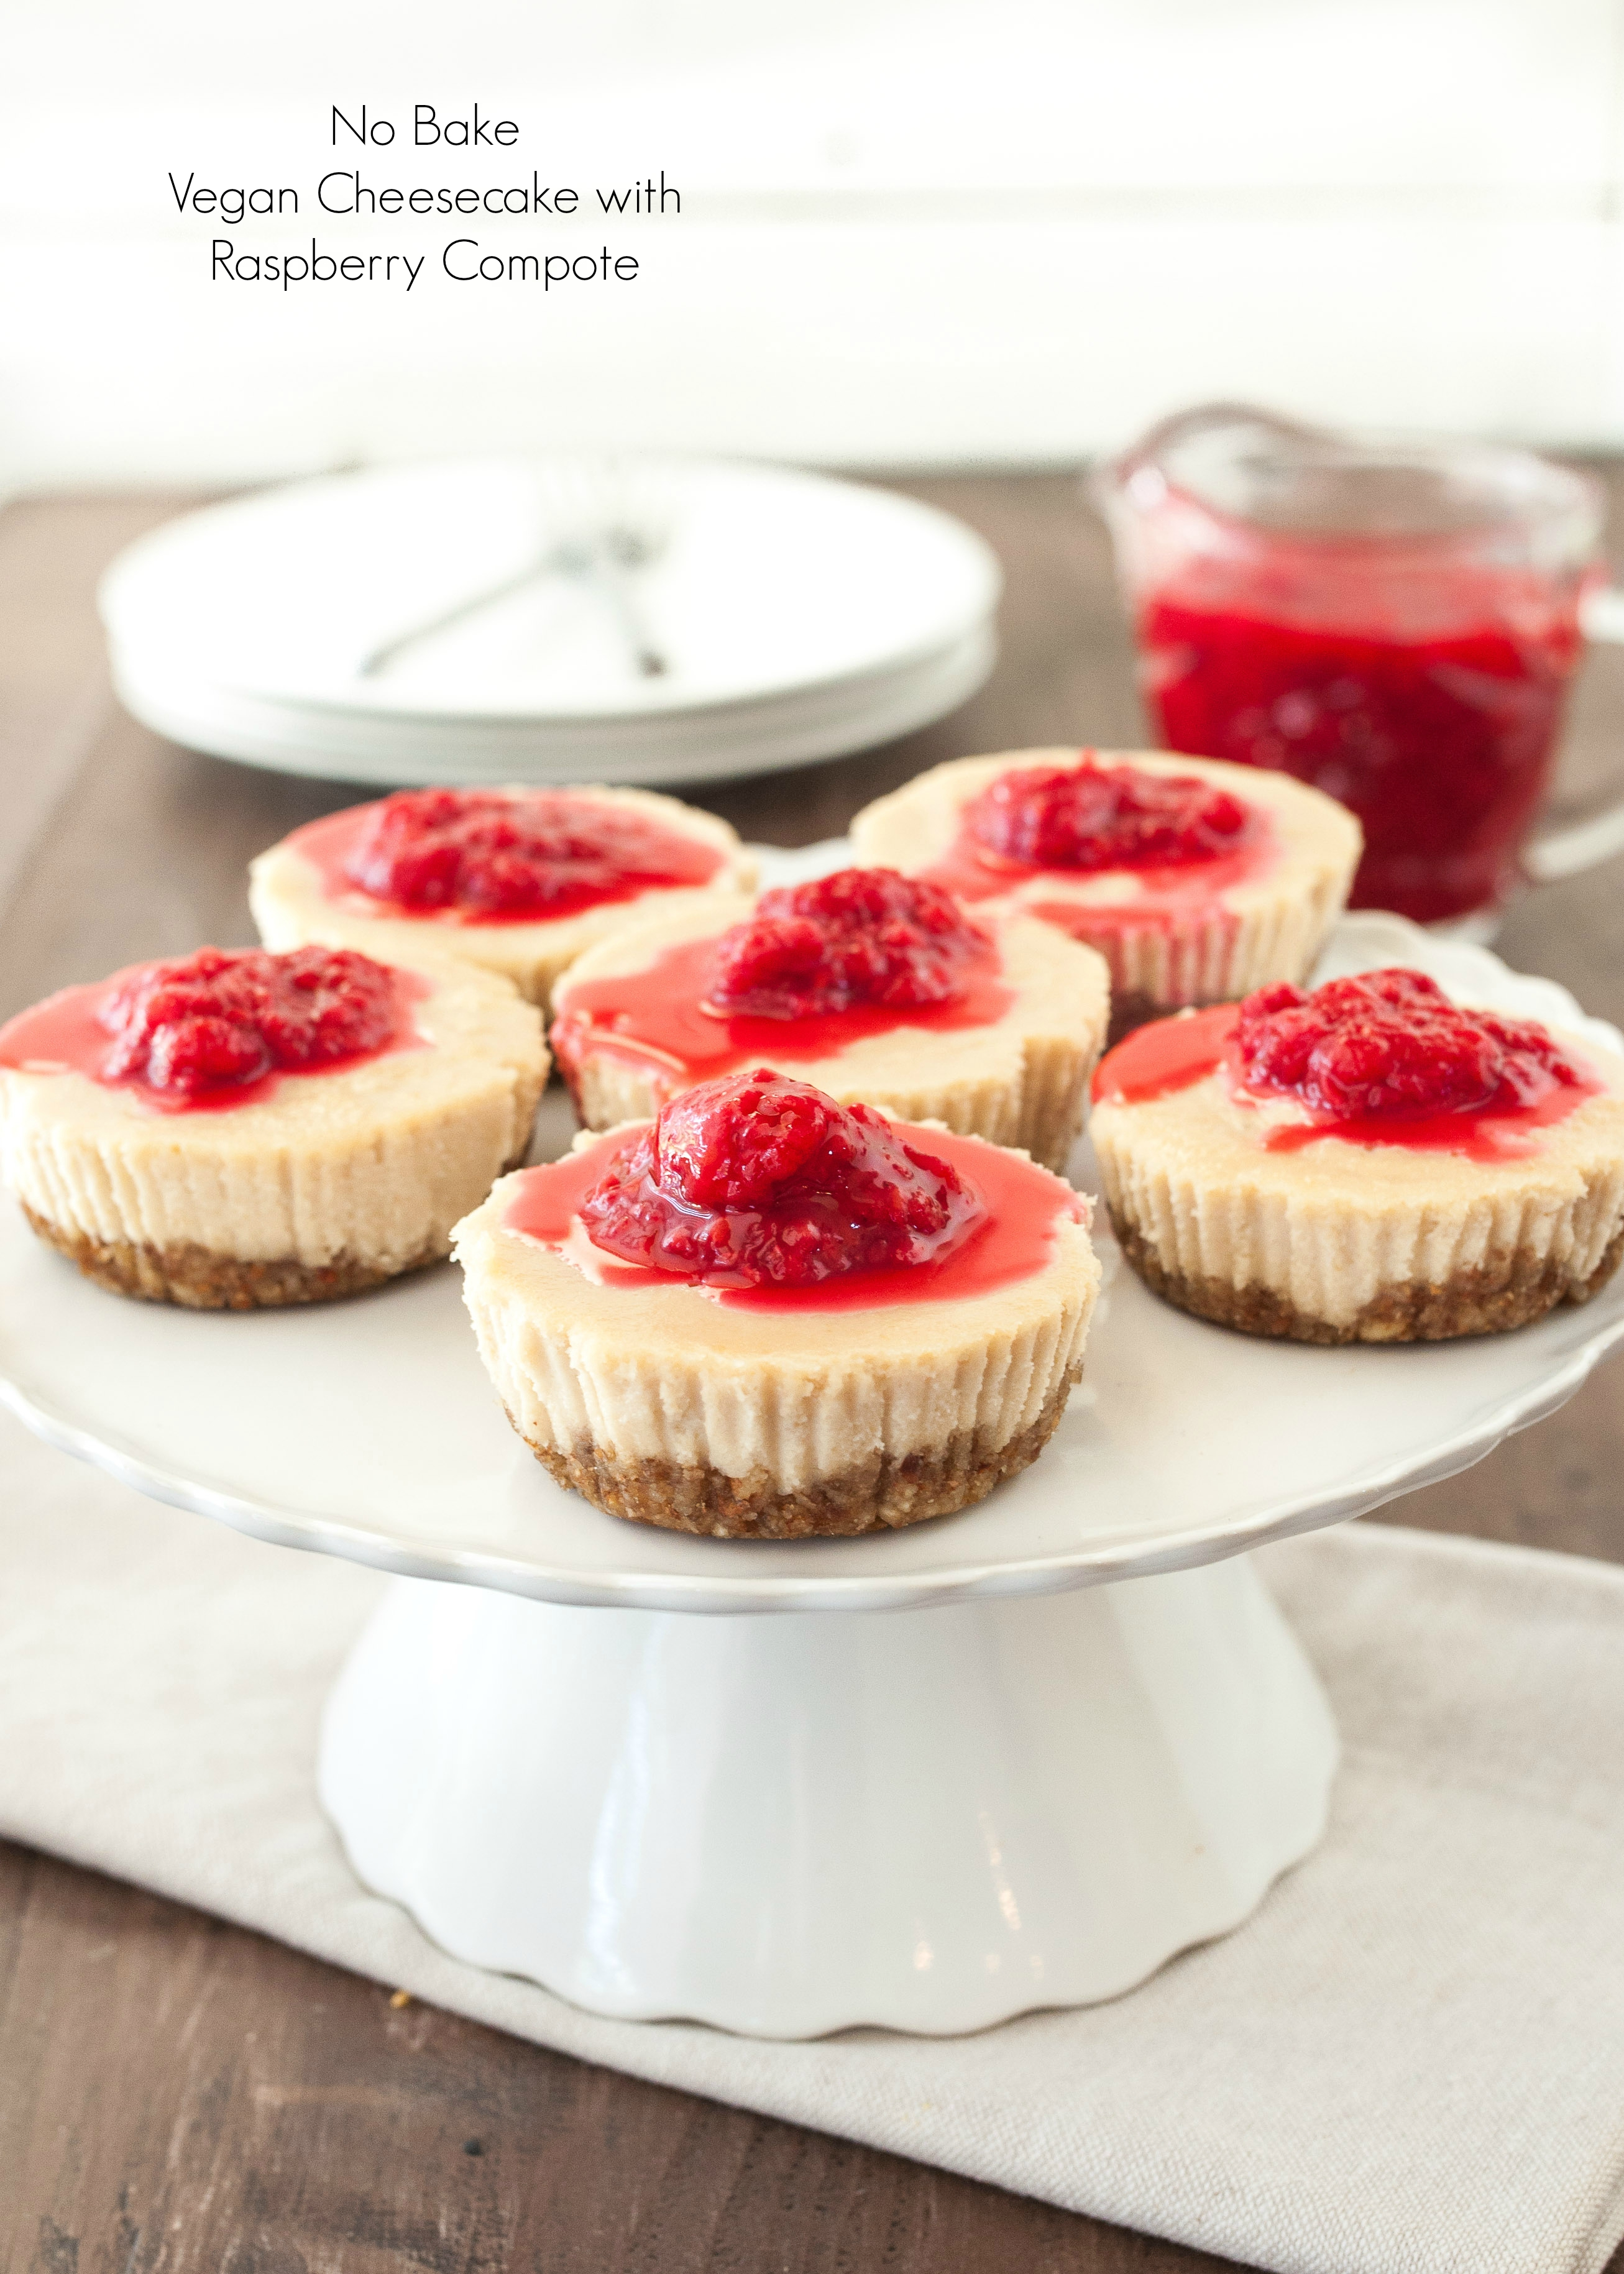 No Bake Vegan Cheesecake with Raspberry Compote #glutenfree | Nutritious Eats